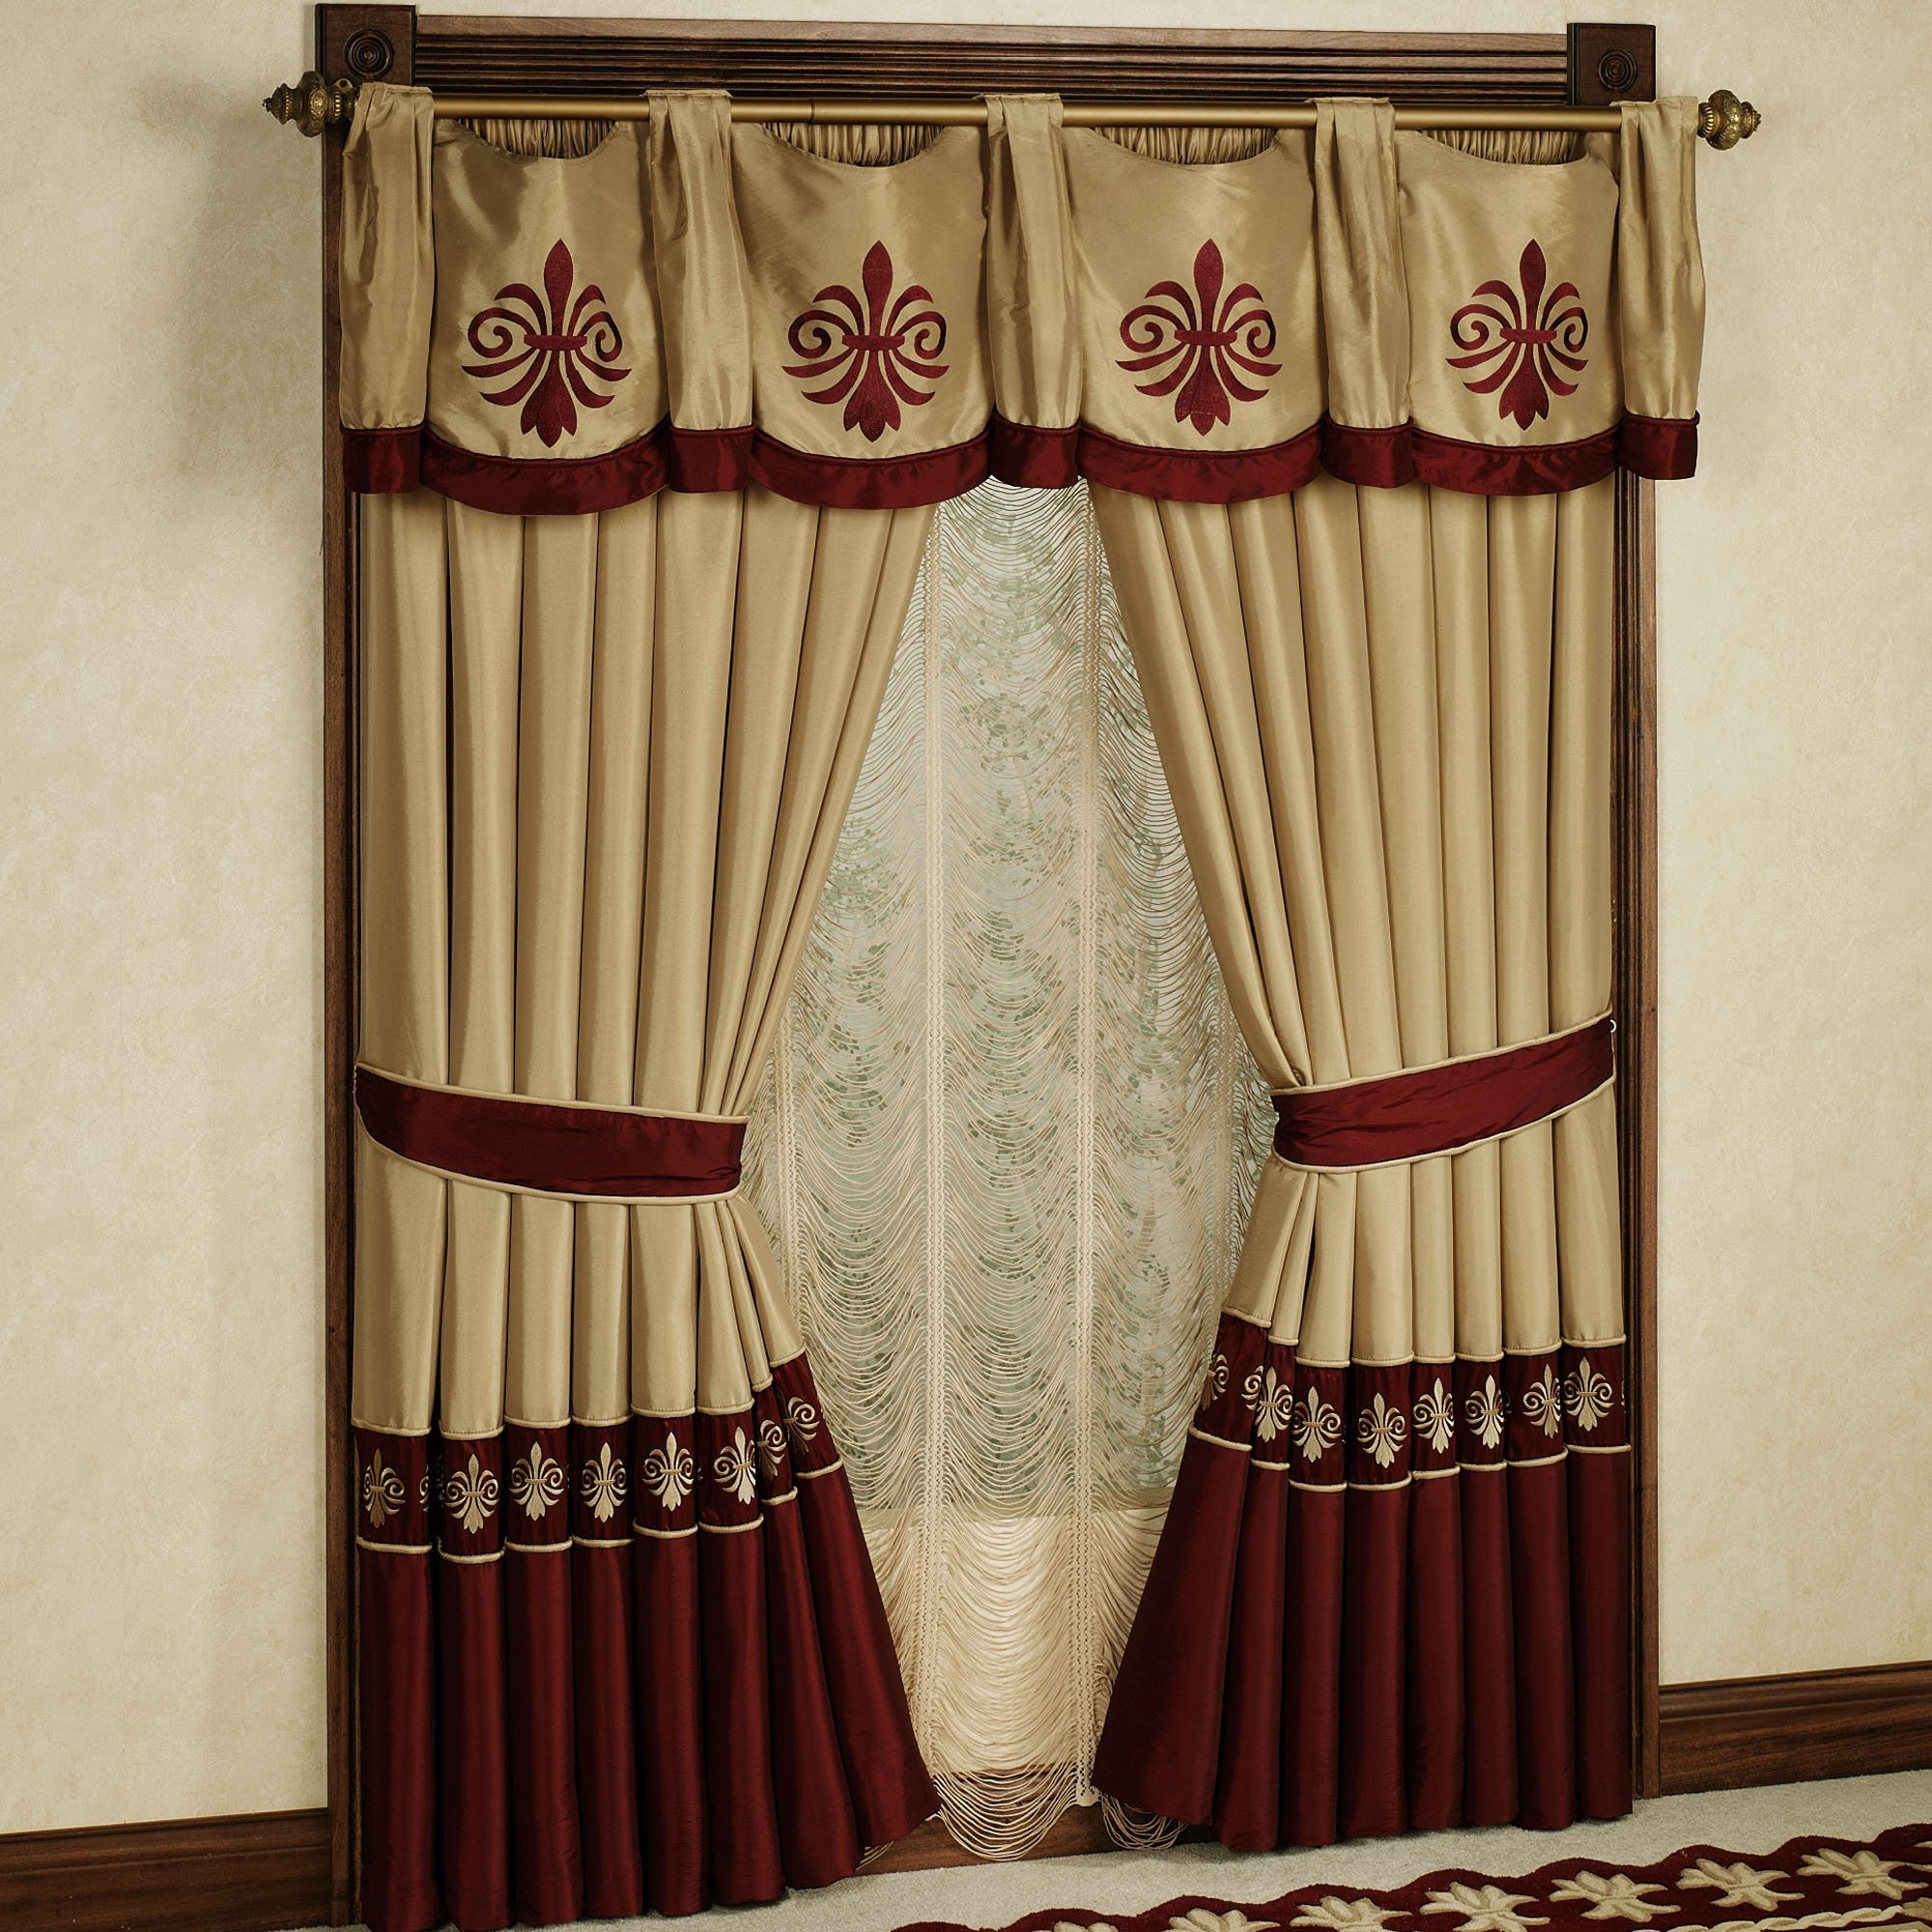 Curtains Curtains For Double Windows Designs Windows Designs With Regard To Curtains Windows (Image 9 of 25)